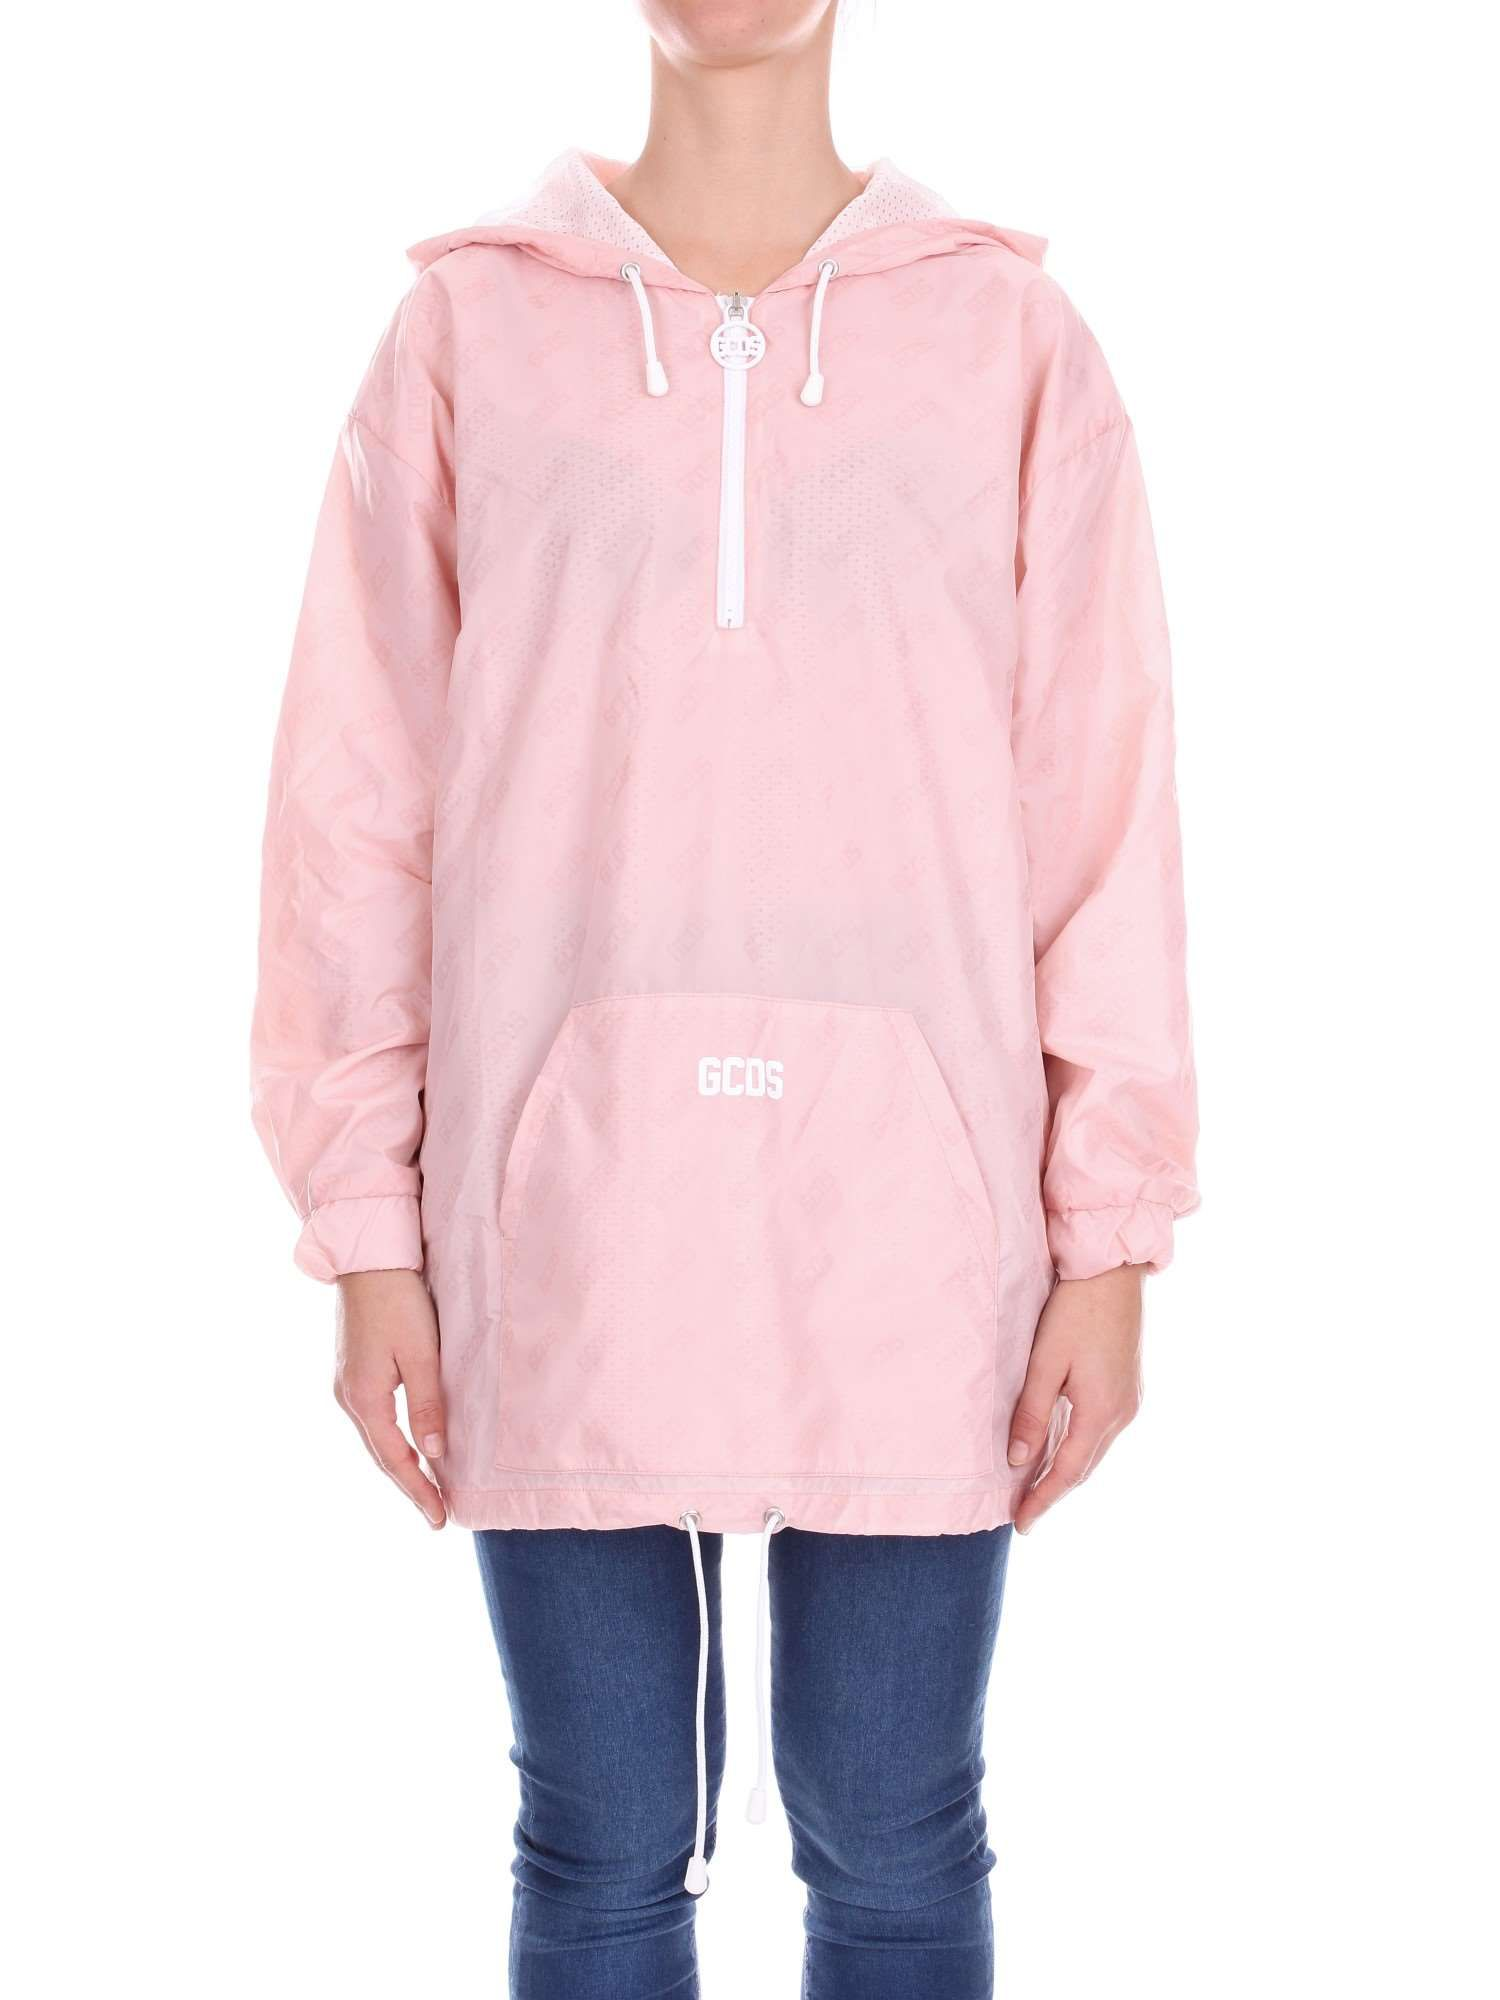 Gcds Pink Polyester Outerwear Jacket